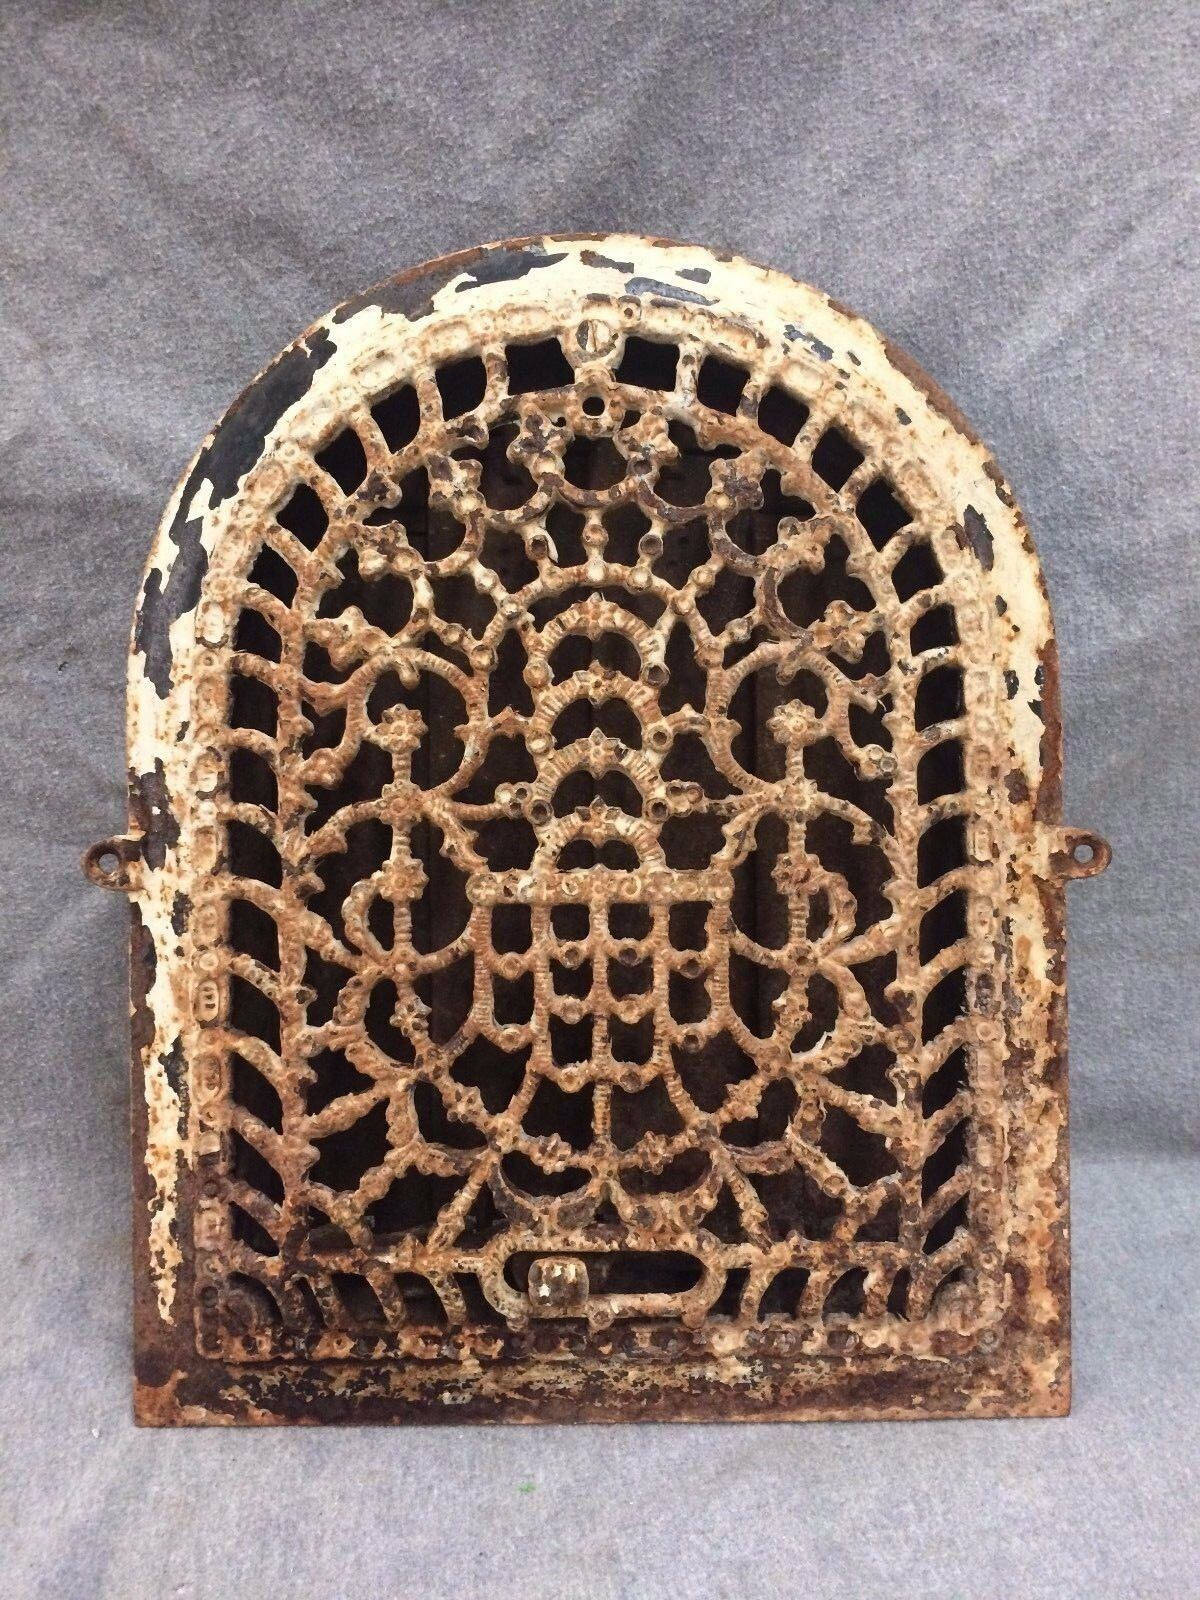 Antique Cast Iron Arch Top Dome Heat Grate Wall Register 2141-16